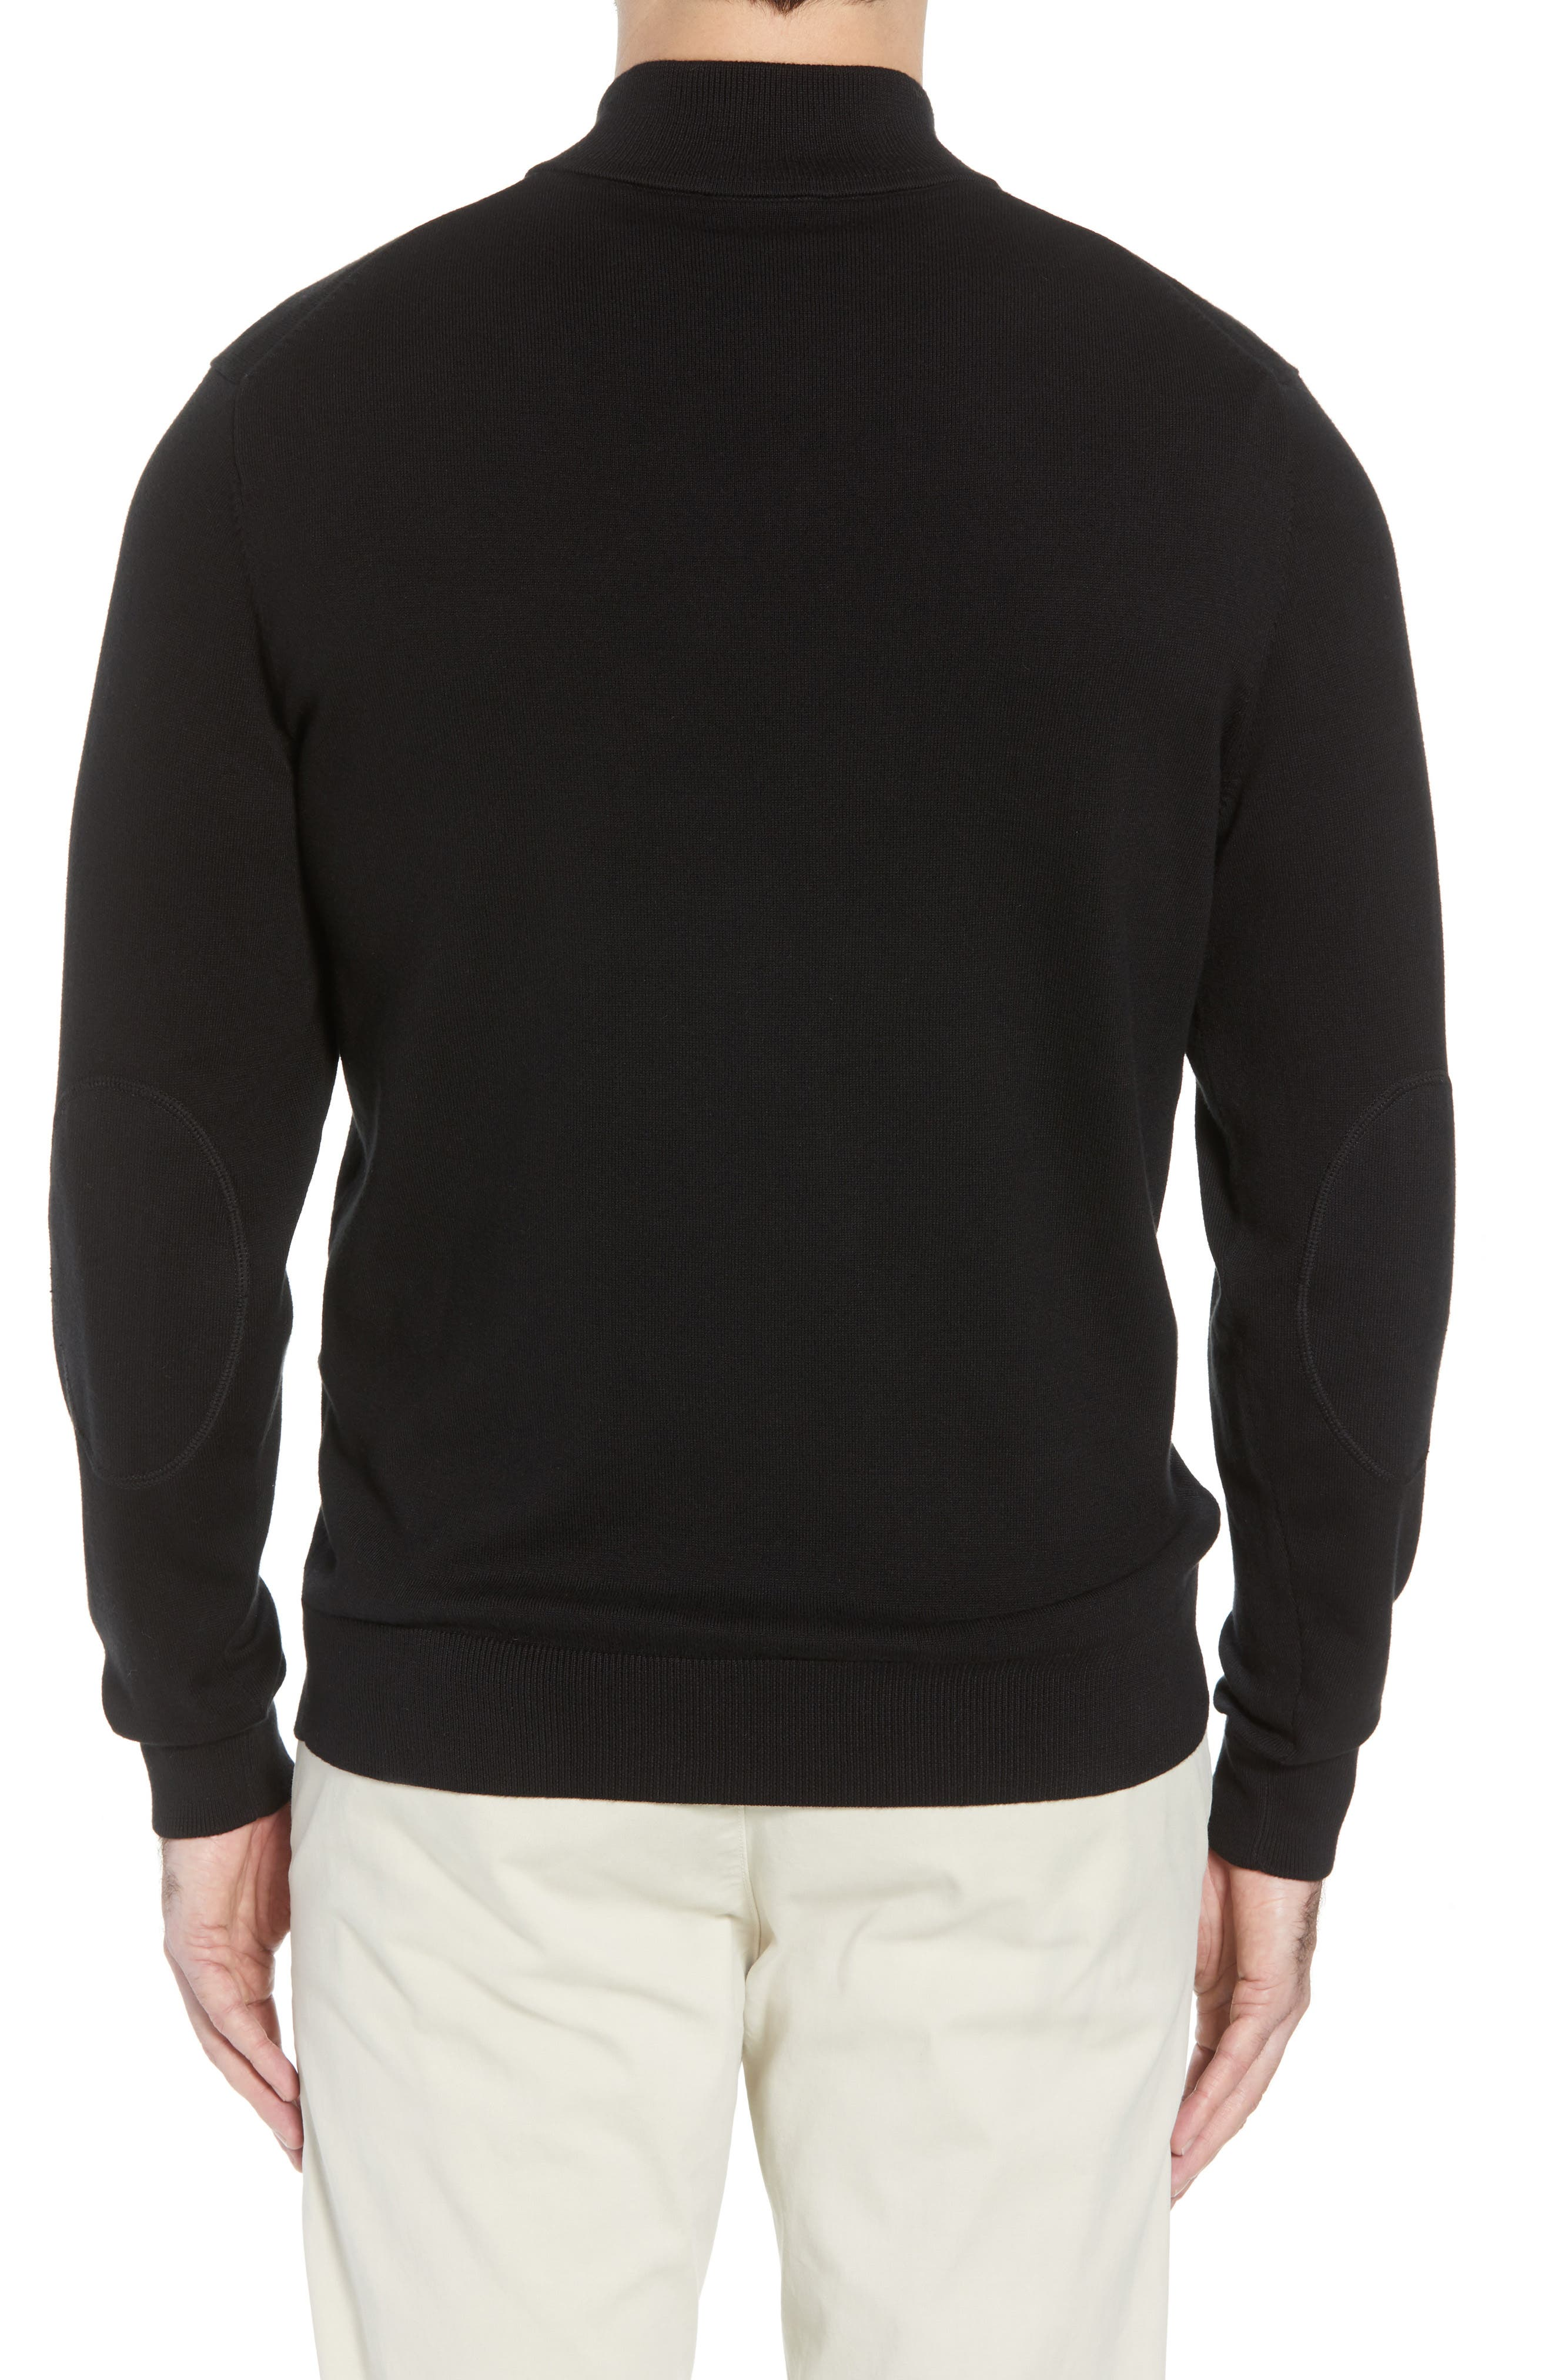 San Francisco 49ers - Lakemont Regular Fit Quarter Zip Sweater,                             Alternate thumbnail 2, color,                             BLACK